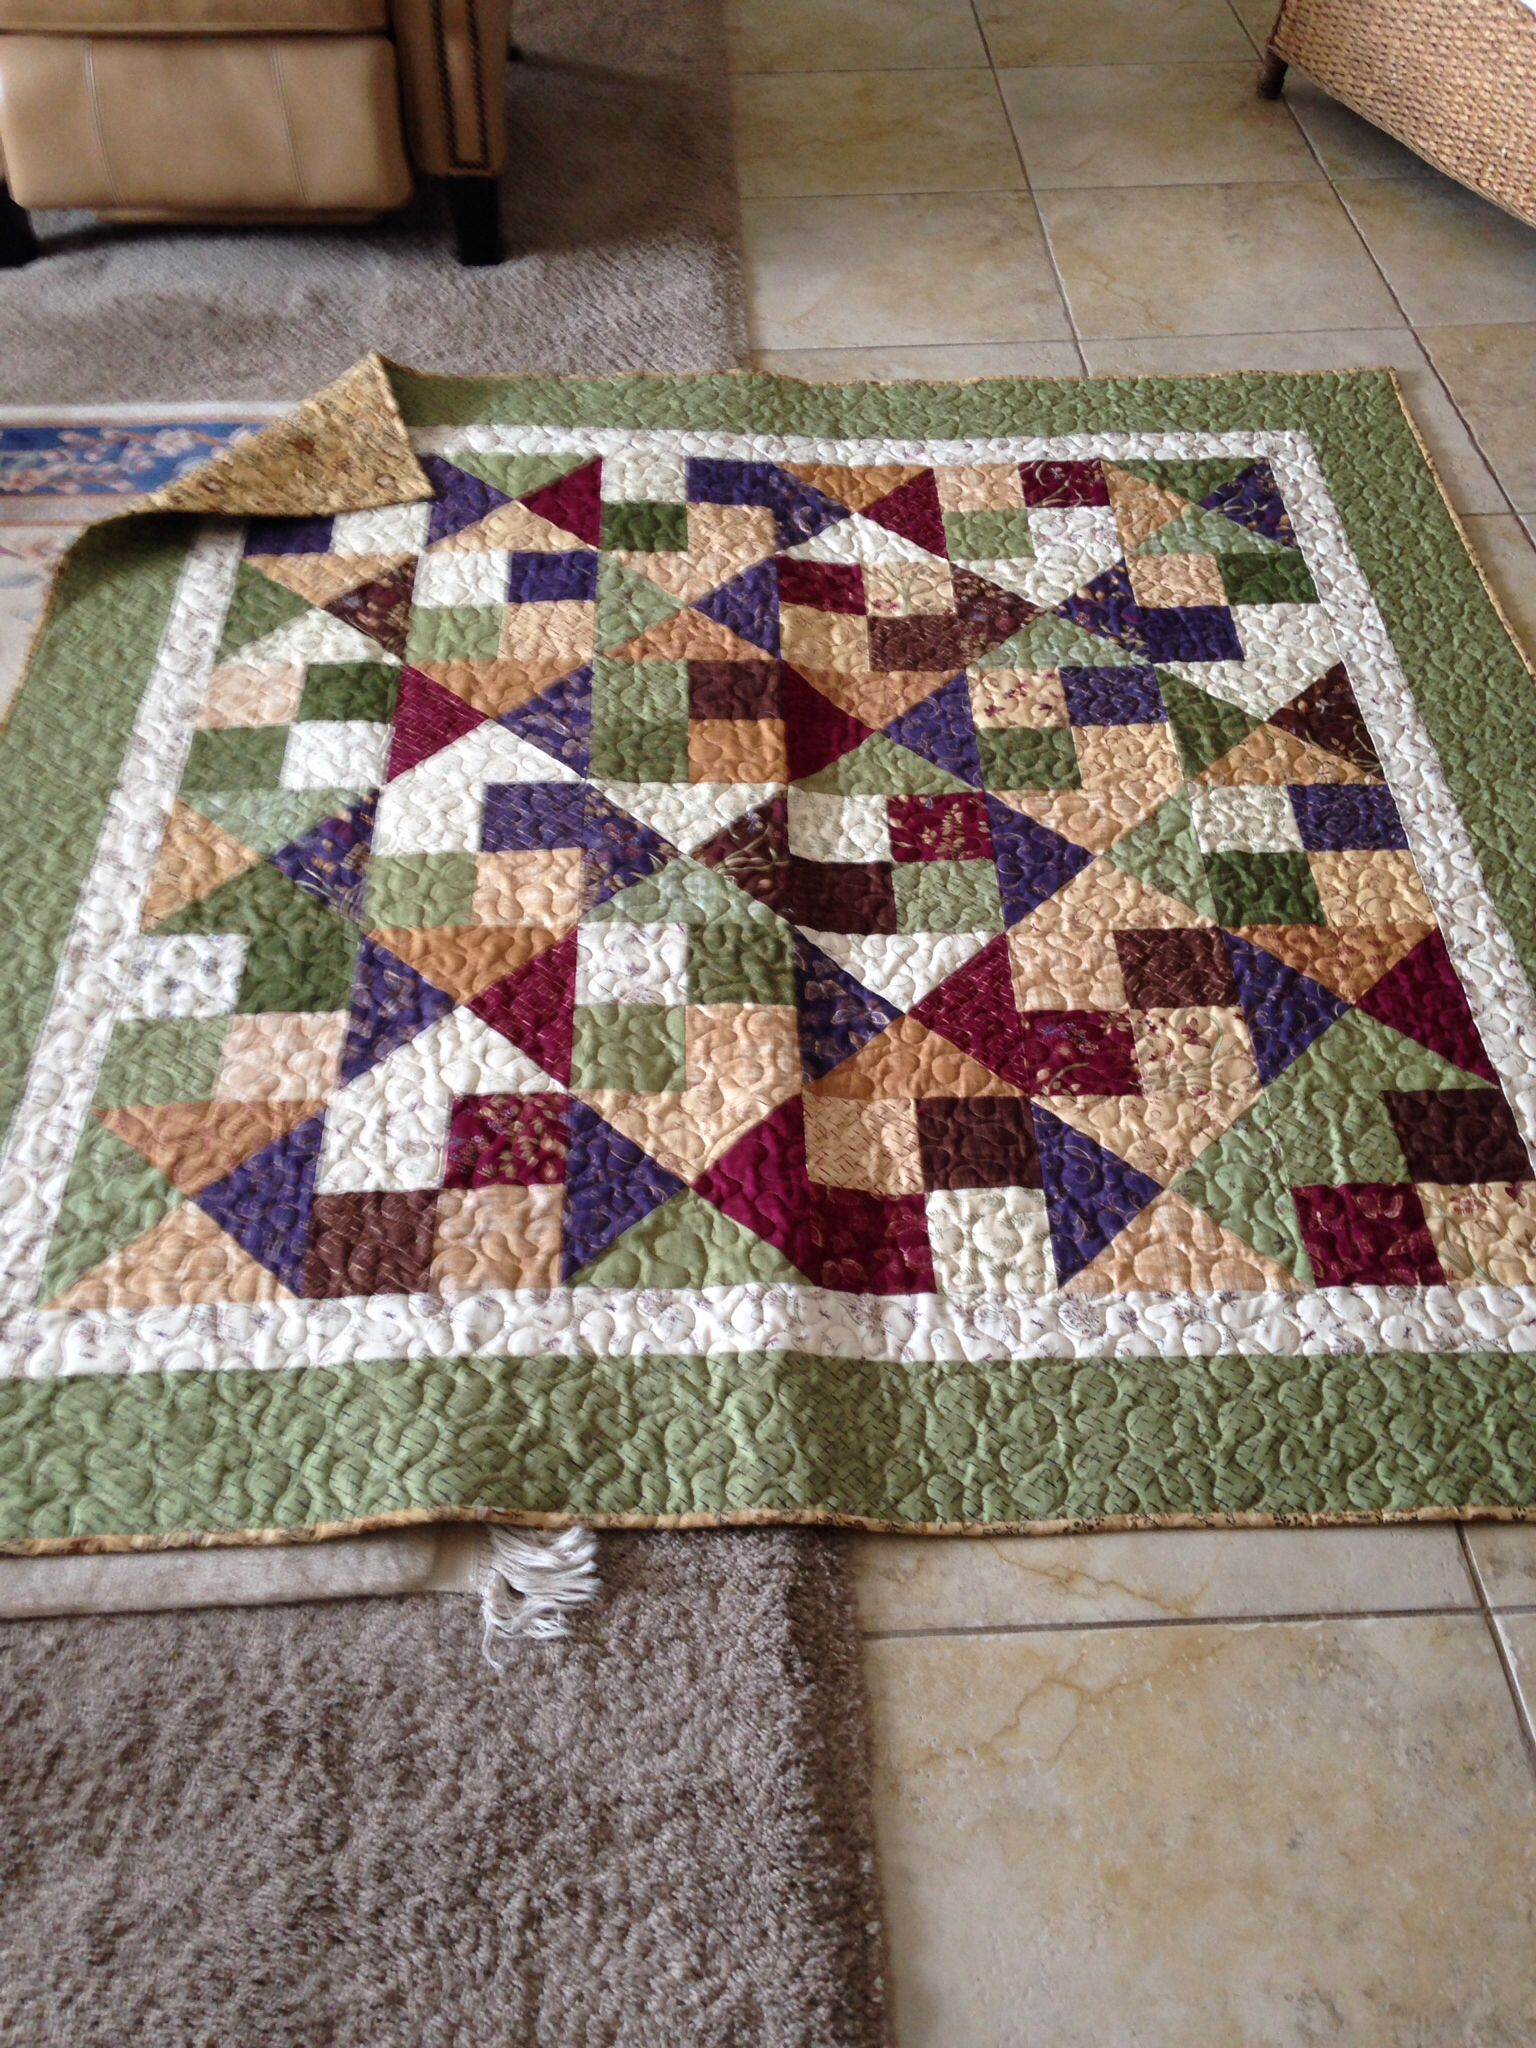 Alter ego pattern from Missouri Star Quilt Company....finished 2014